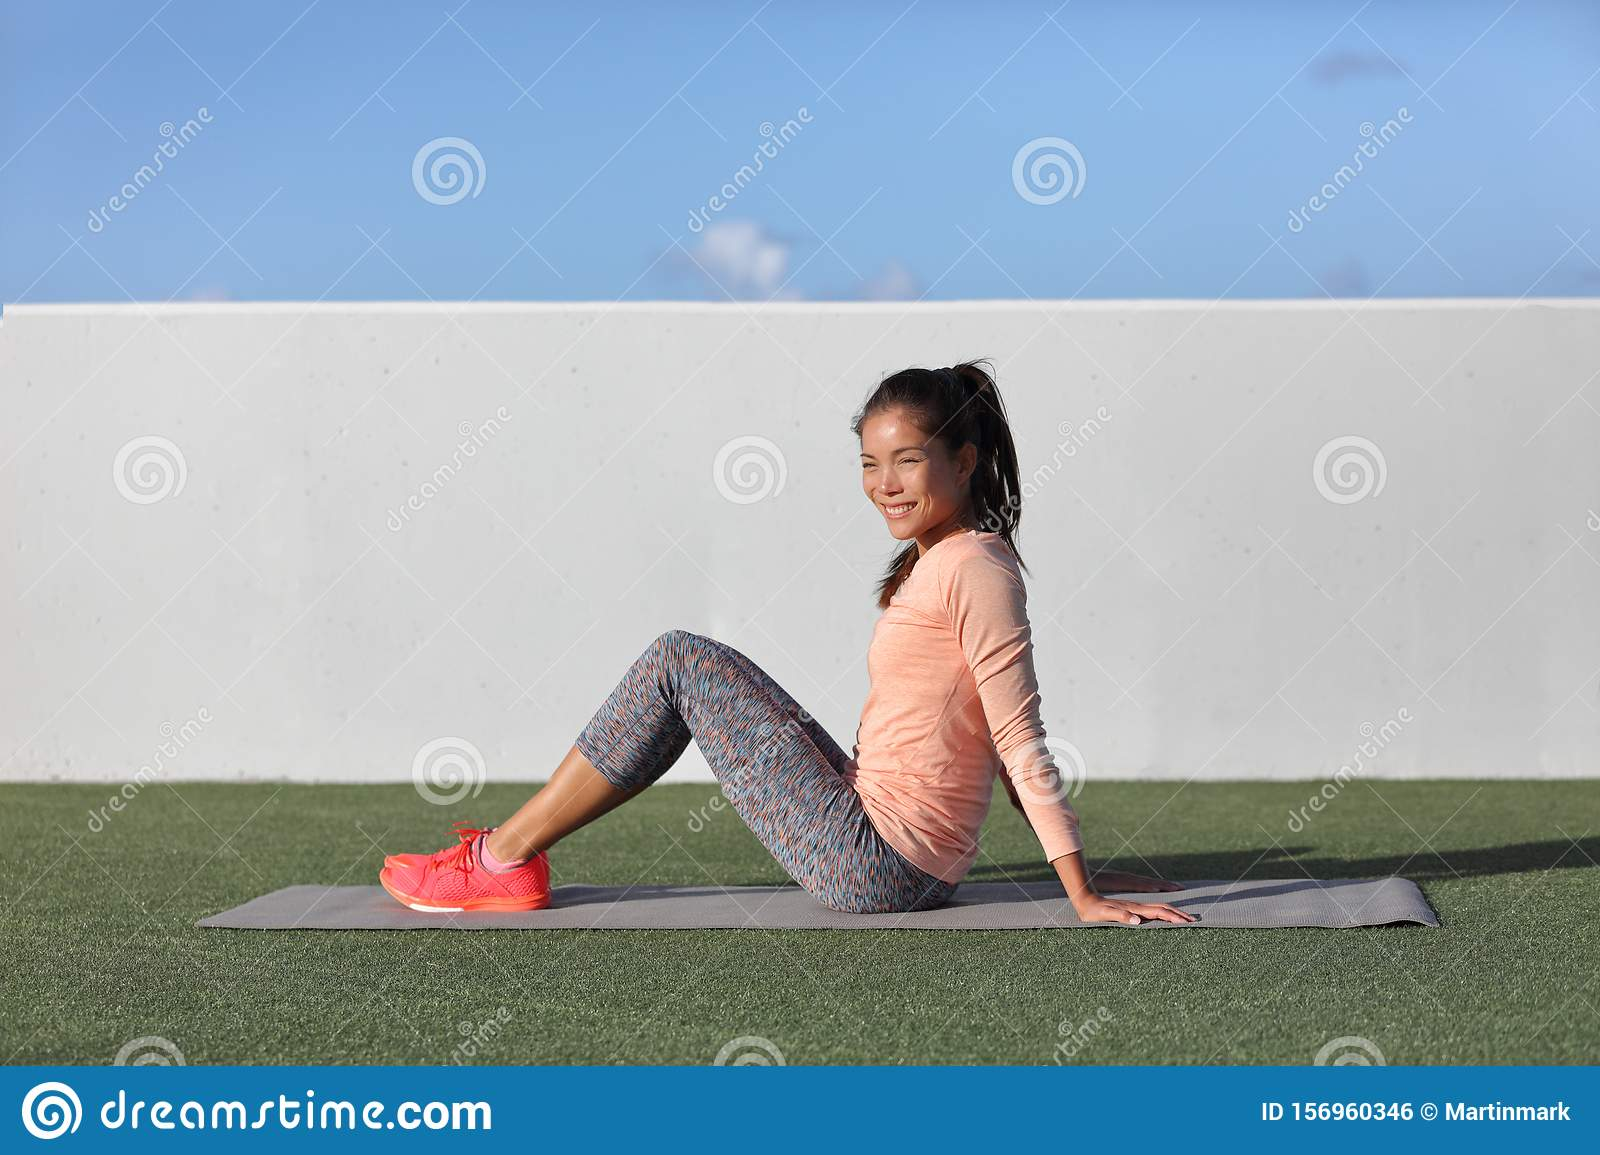 Gym fitness woman portrait relaxing on exercise mat in outdoor park grass. Happy Asian fit girl healthy active lifestyle ready for